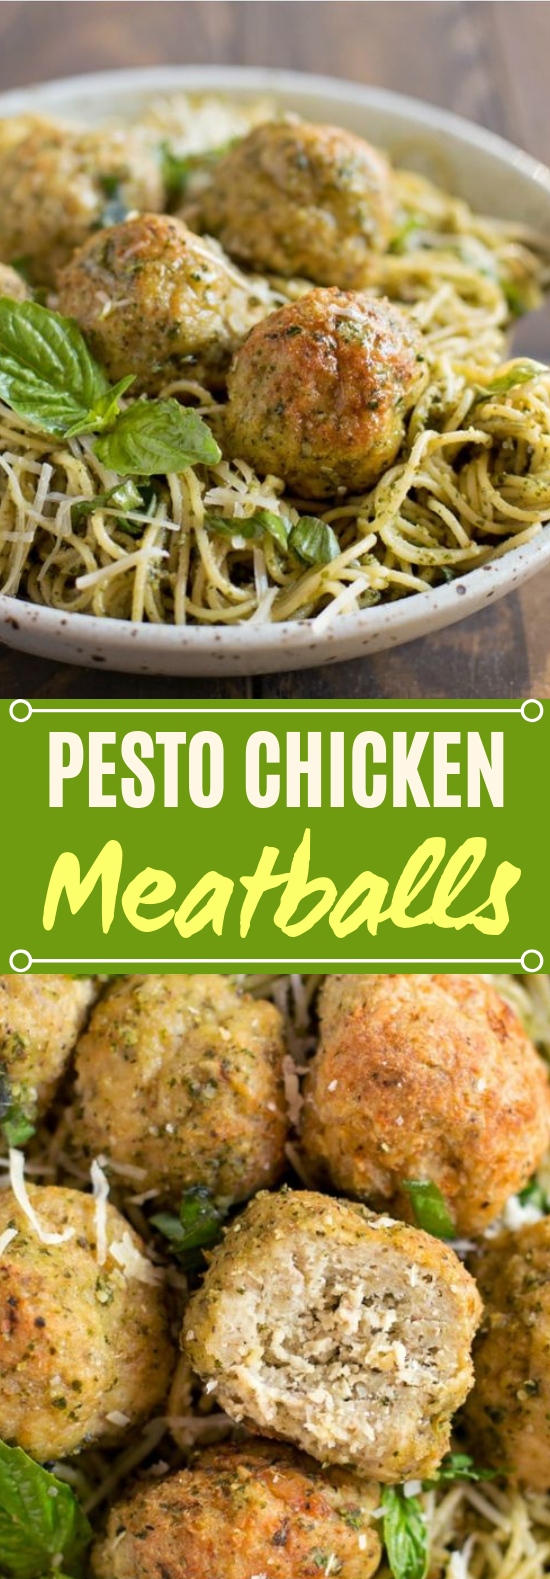 Pesto Chicken Meatballs #dinner #easy